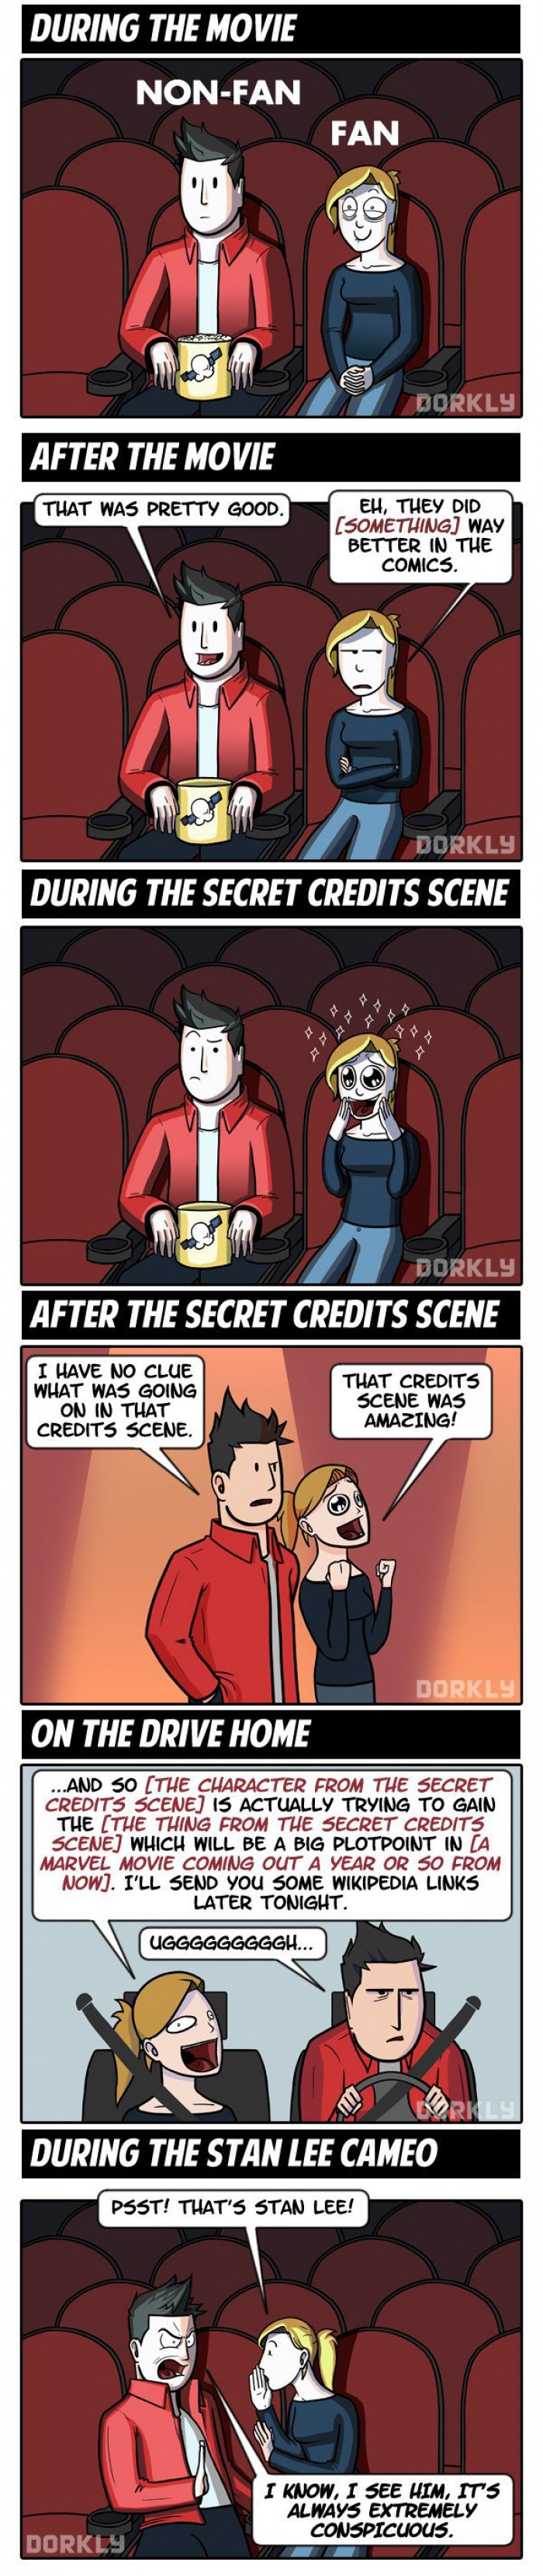 What It's Like To See A Marvel Movie For Fans And Non-fans